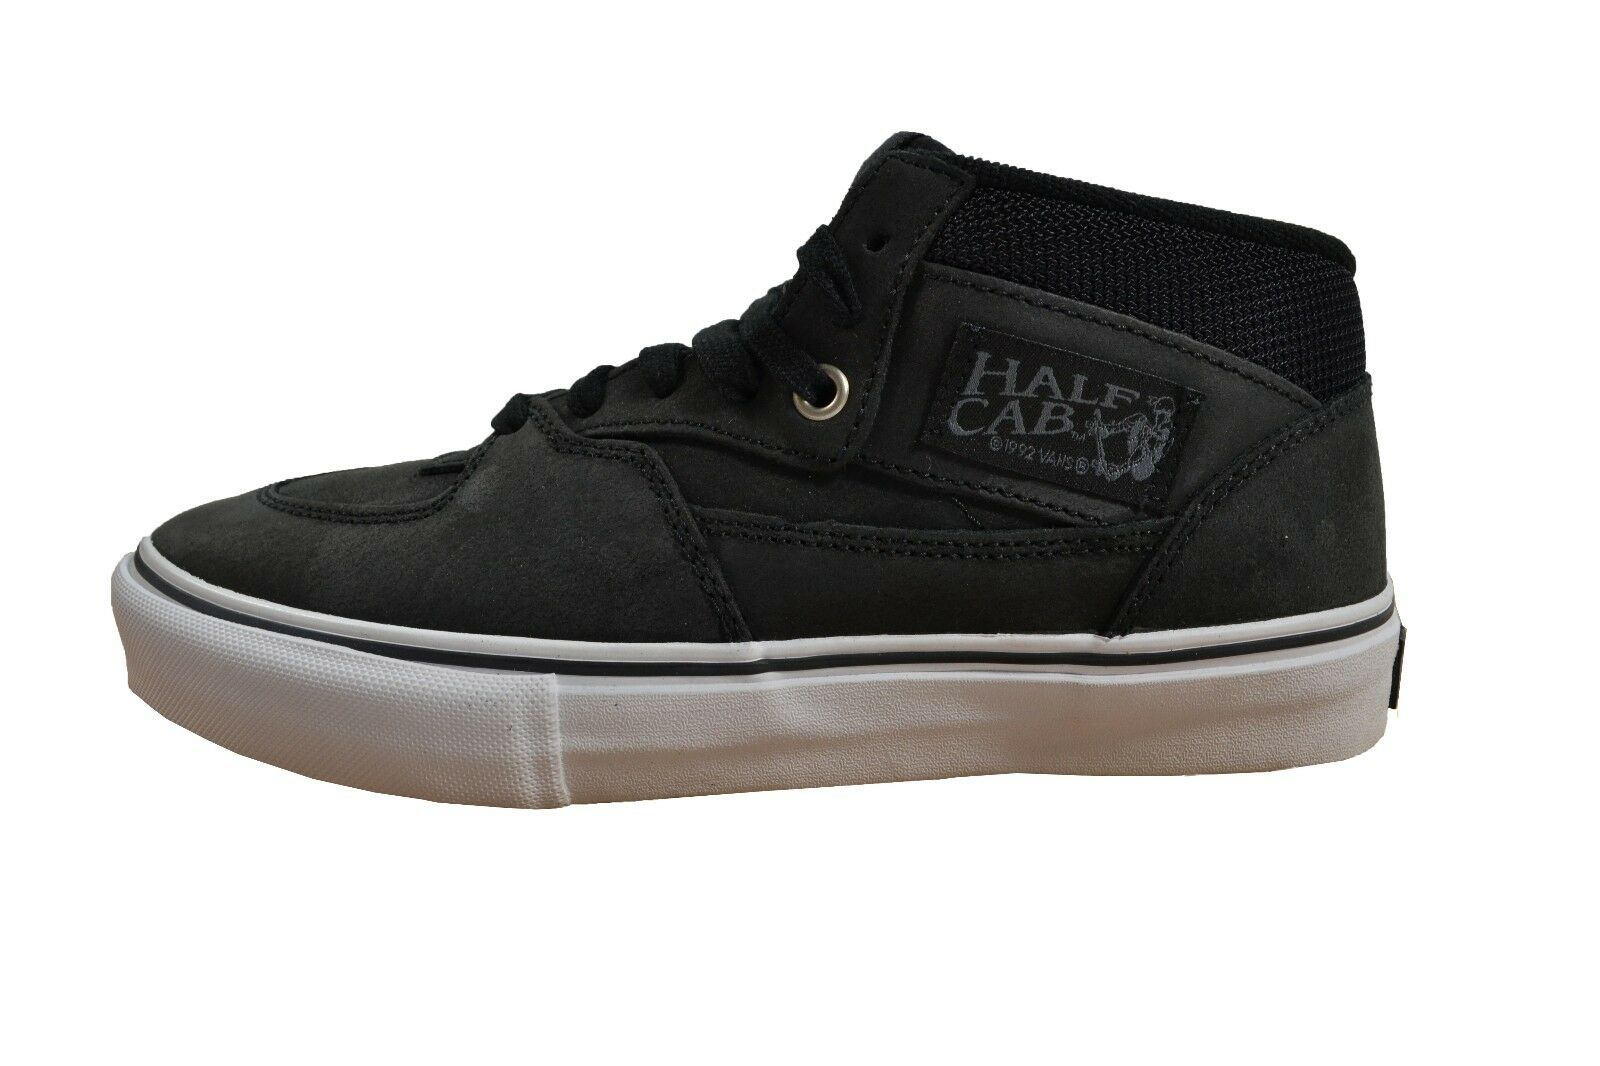 Vans HALF CAB PRO Noir Blanc Discounted (312) Skateboarding Homme Chaussures